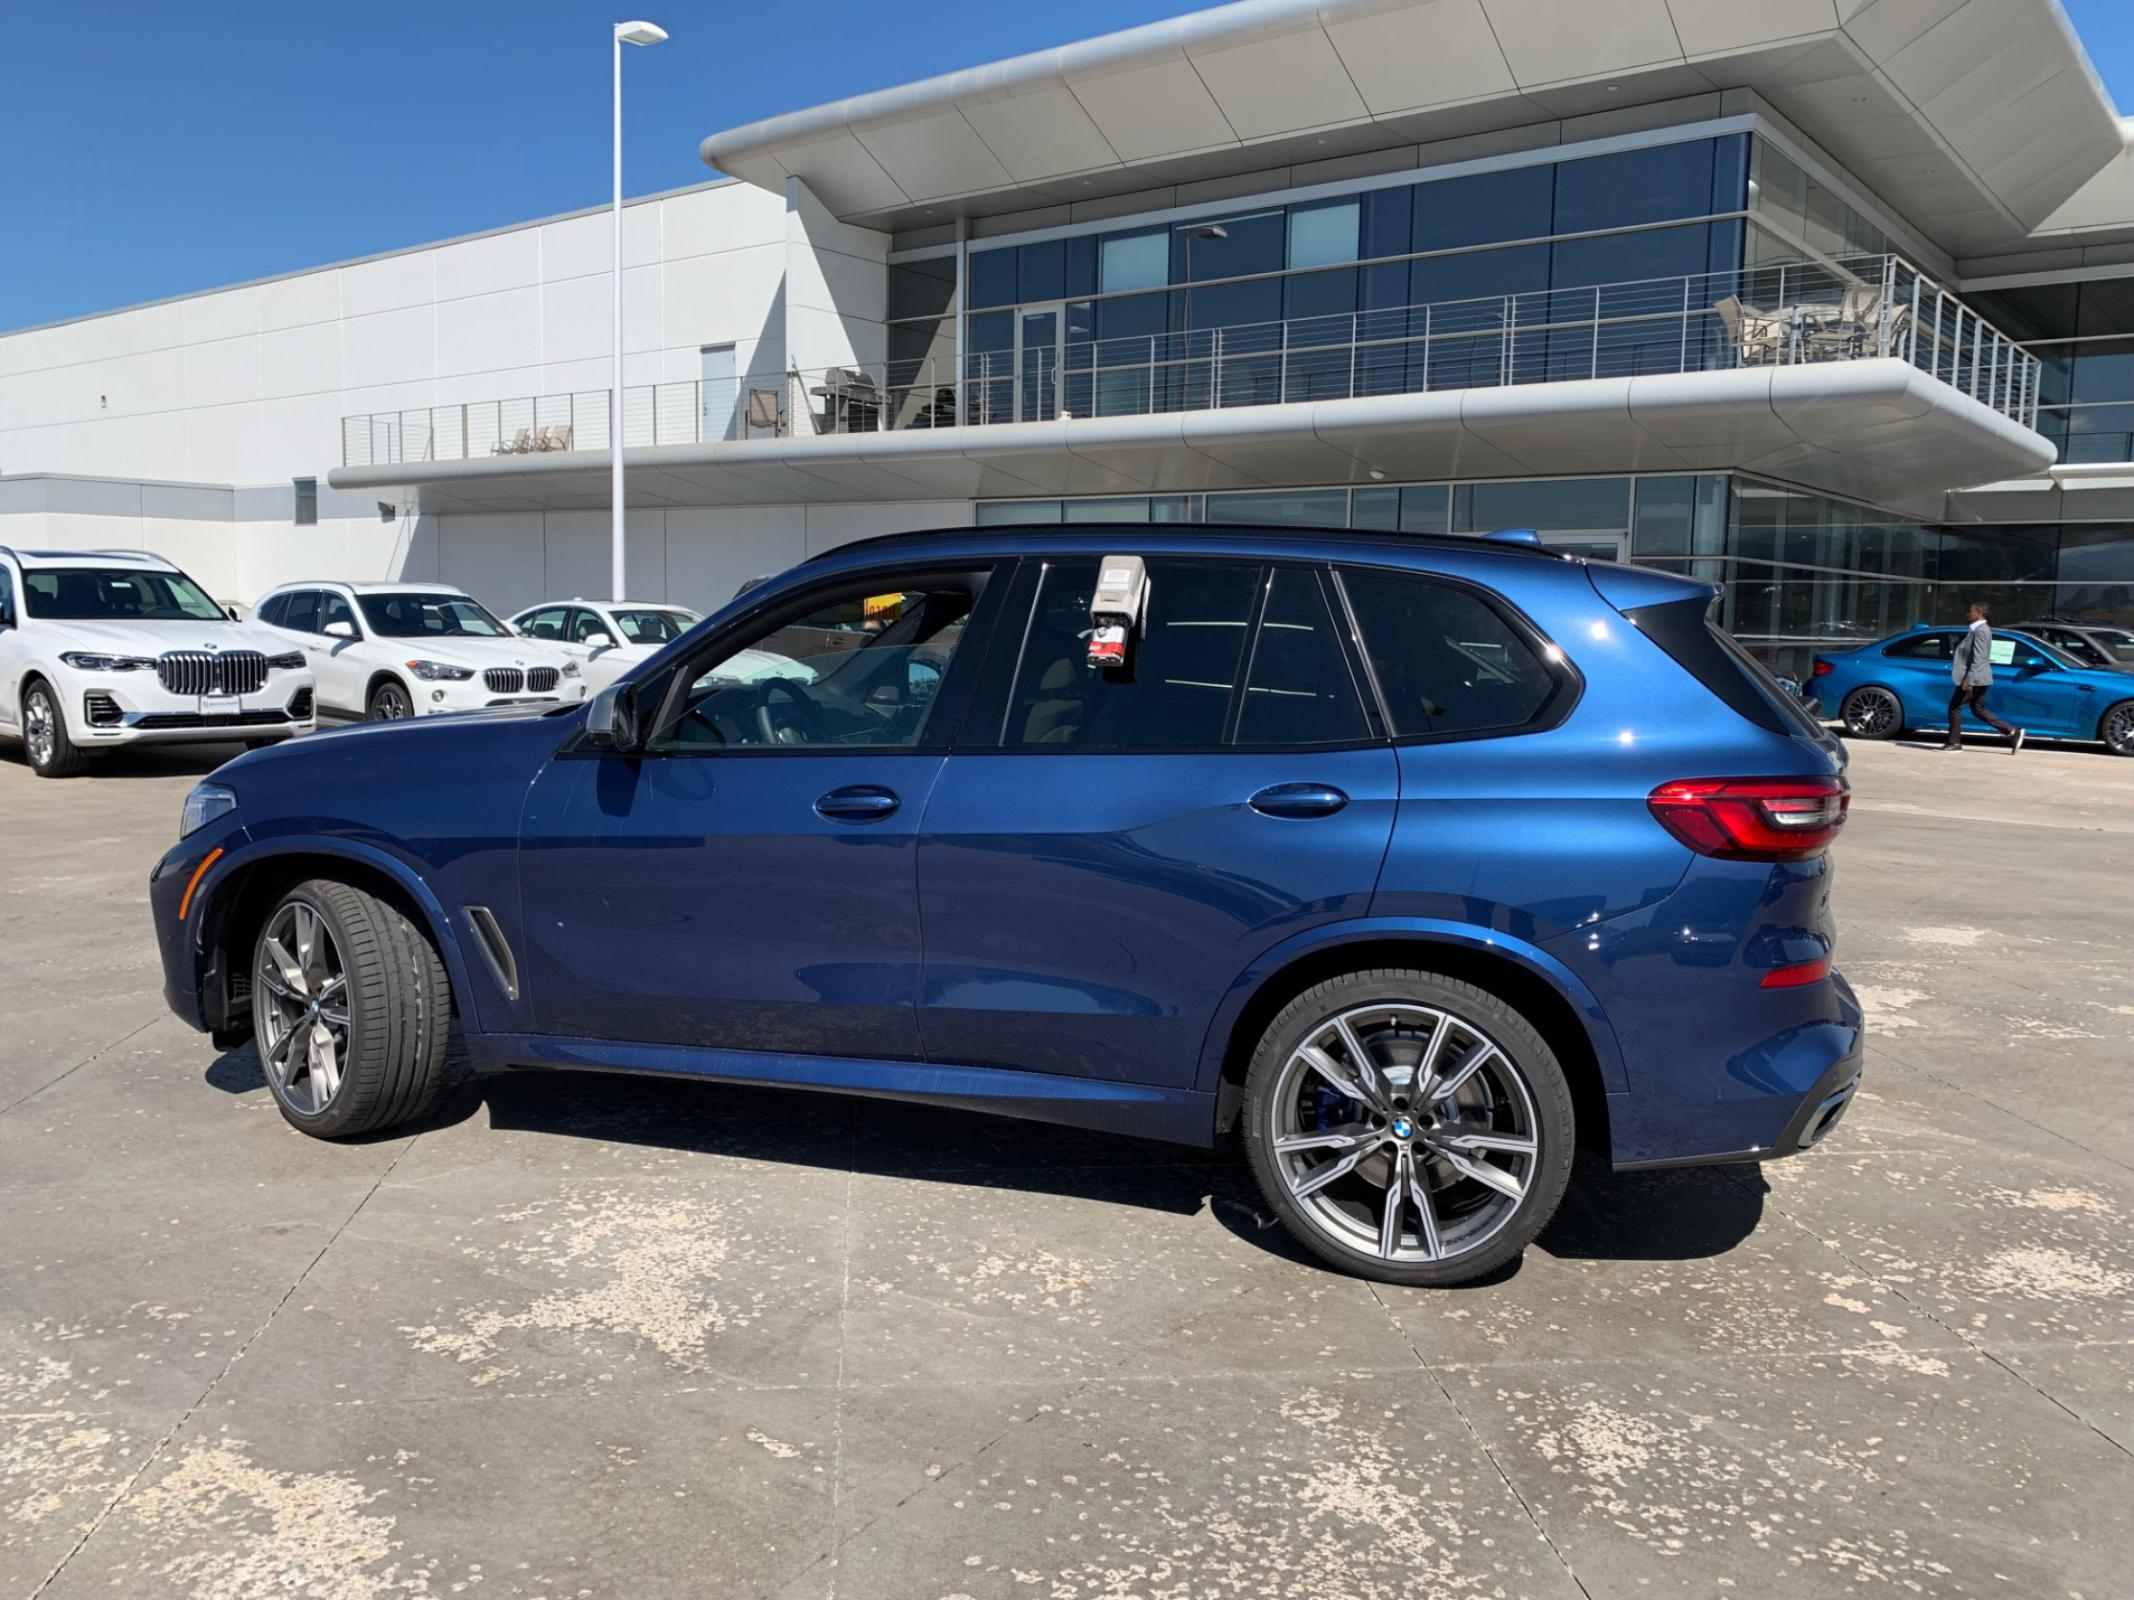 US M50i with Roof Rails - They DO Exist!! - BMW X5 Forum (G05)